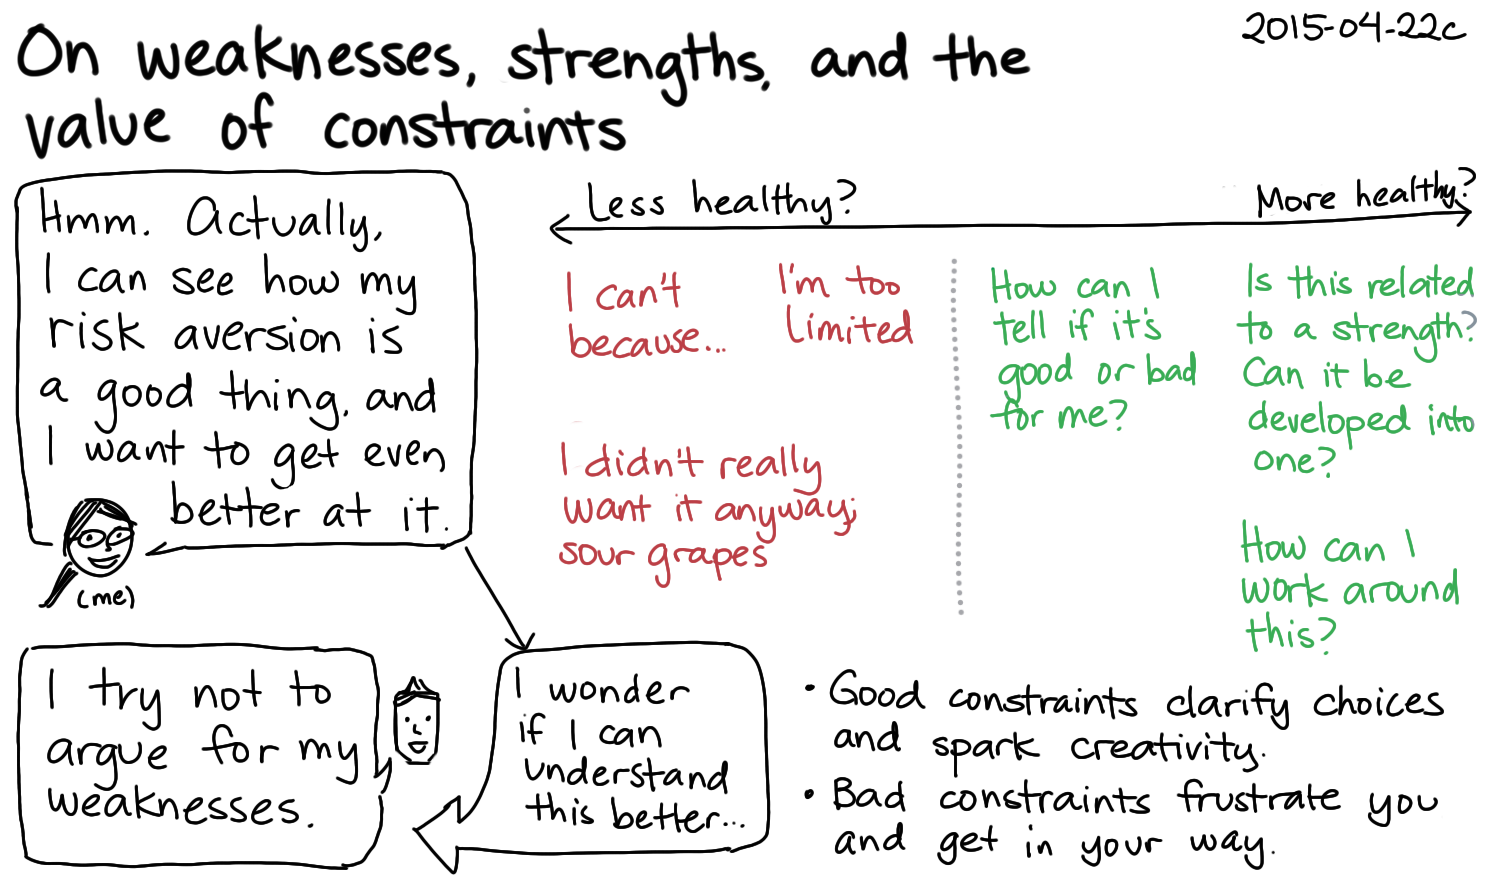 2015-04-22c On weaknesses, strengths, and the value of constraints -- index card #weaknesses.png